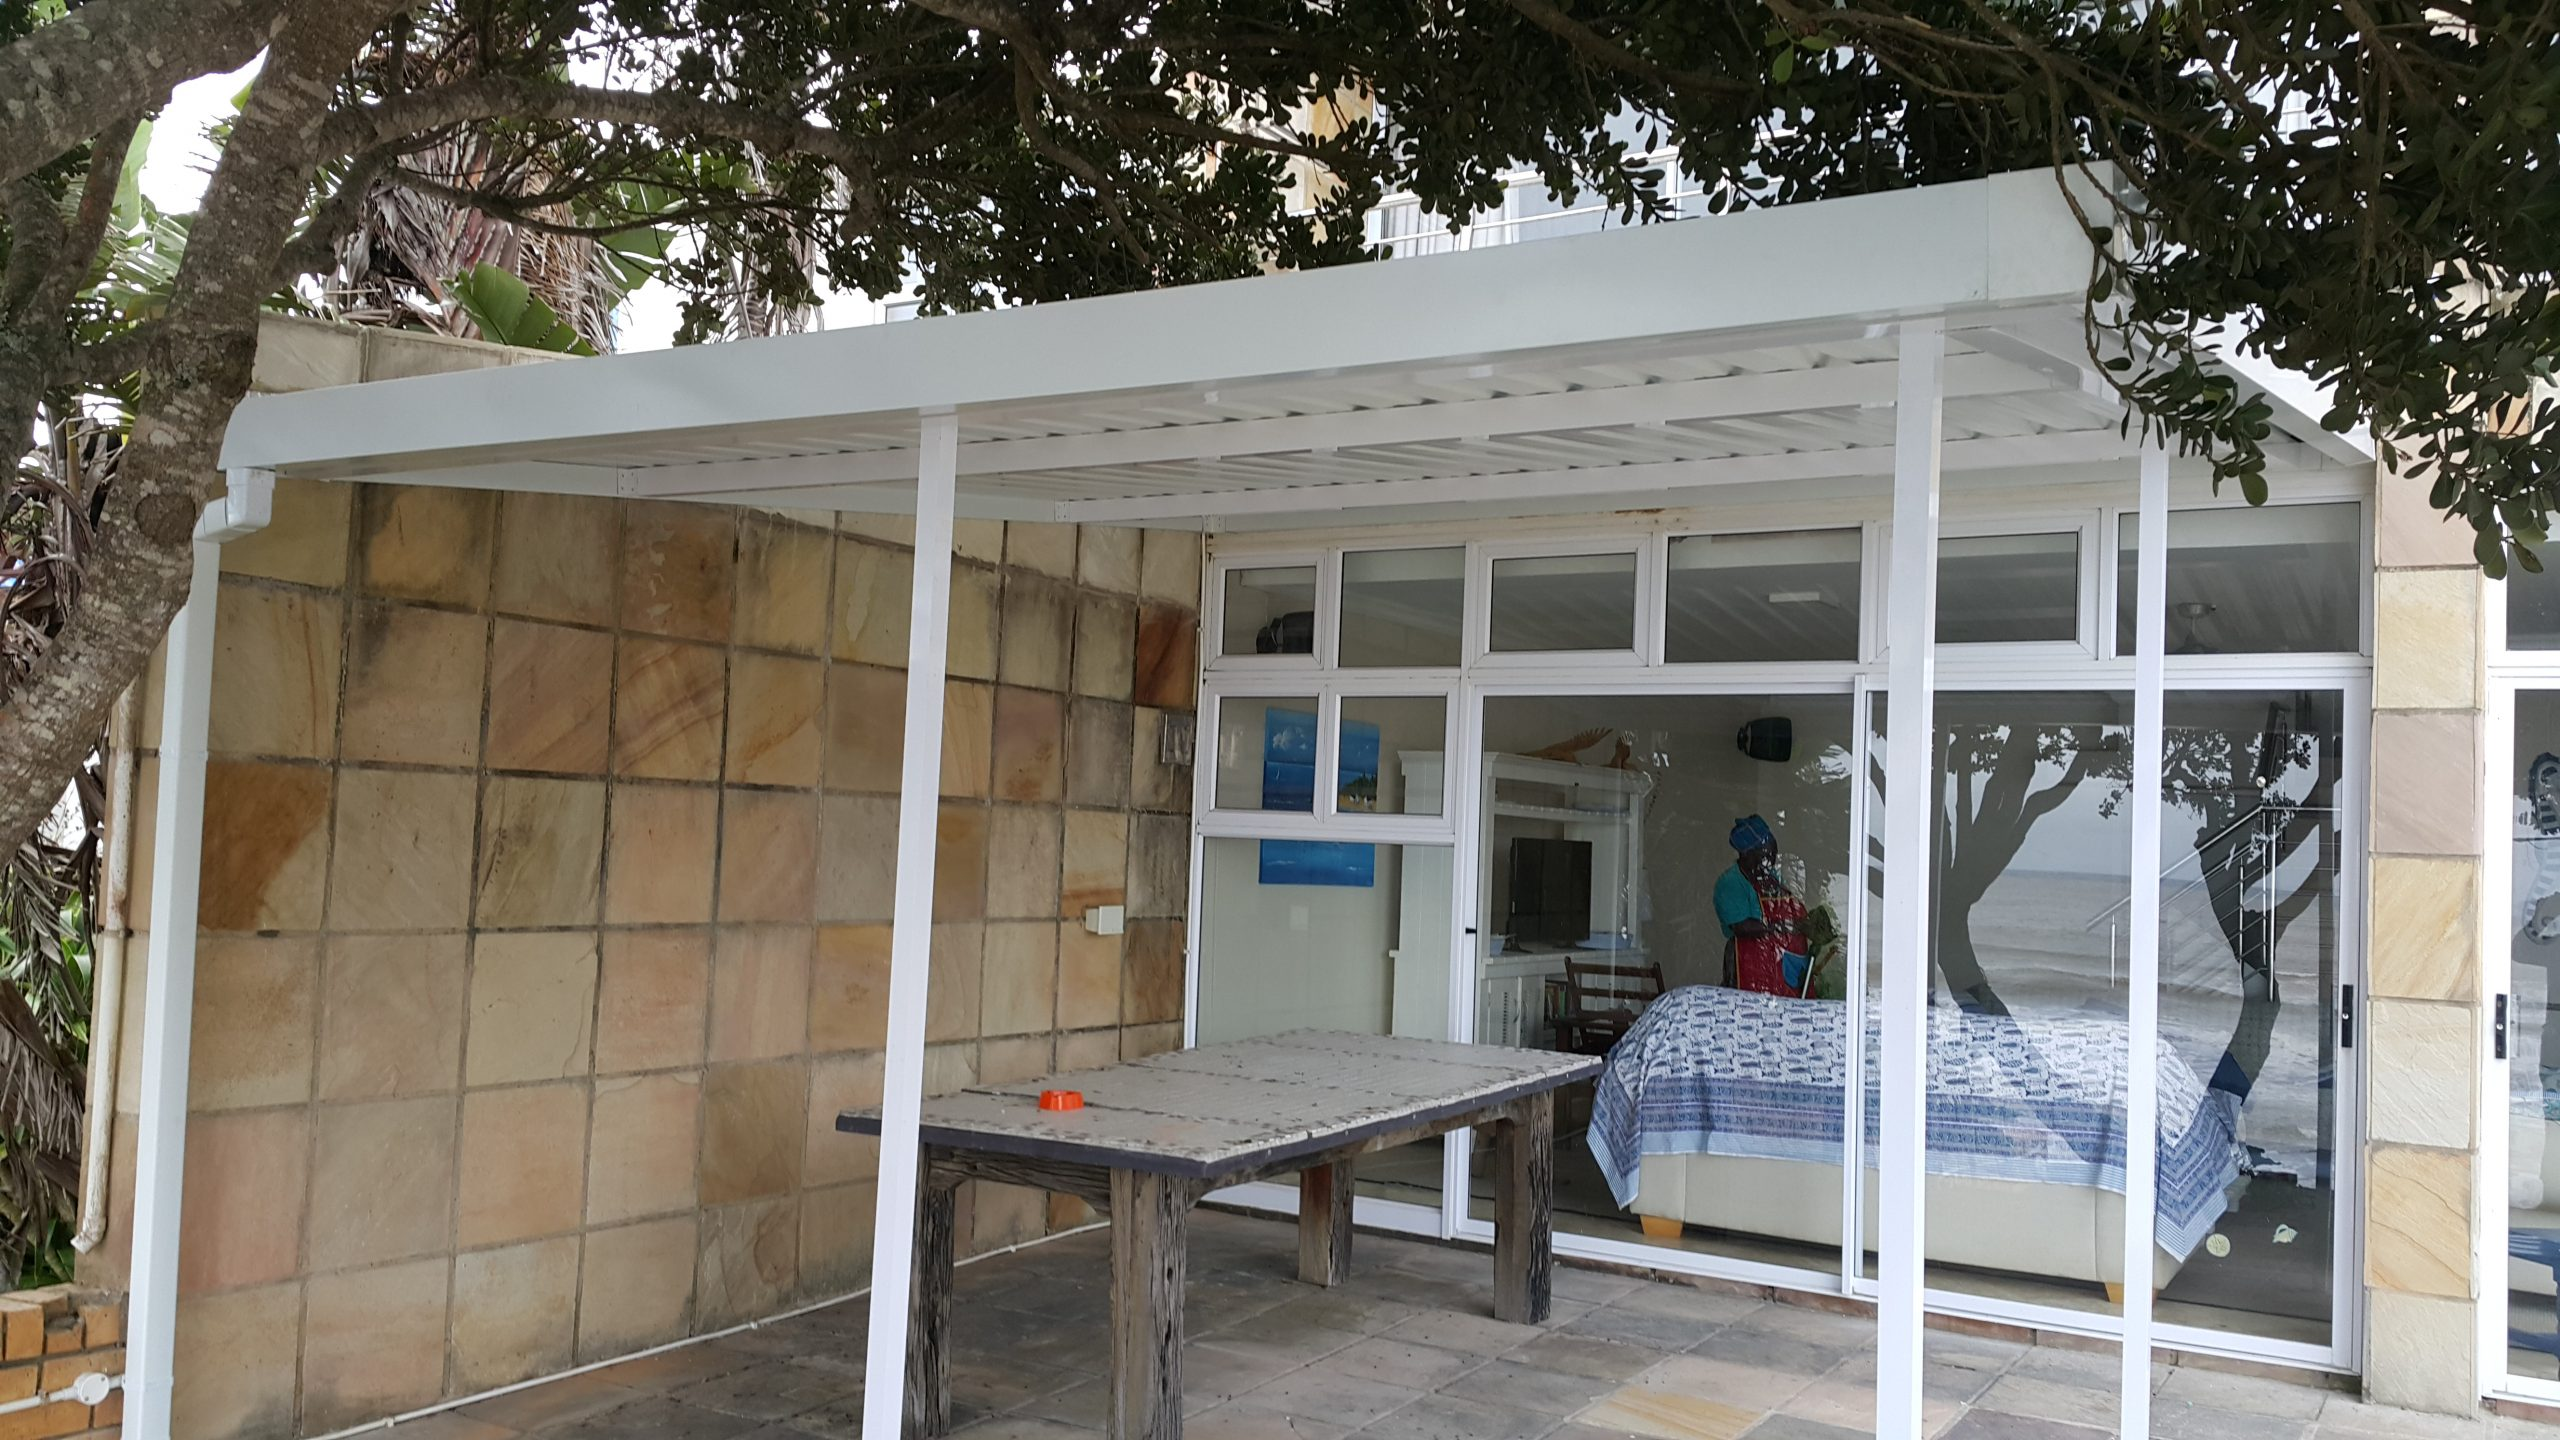 Patio awning installation extends the outdoor patio